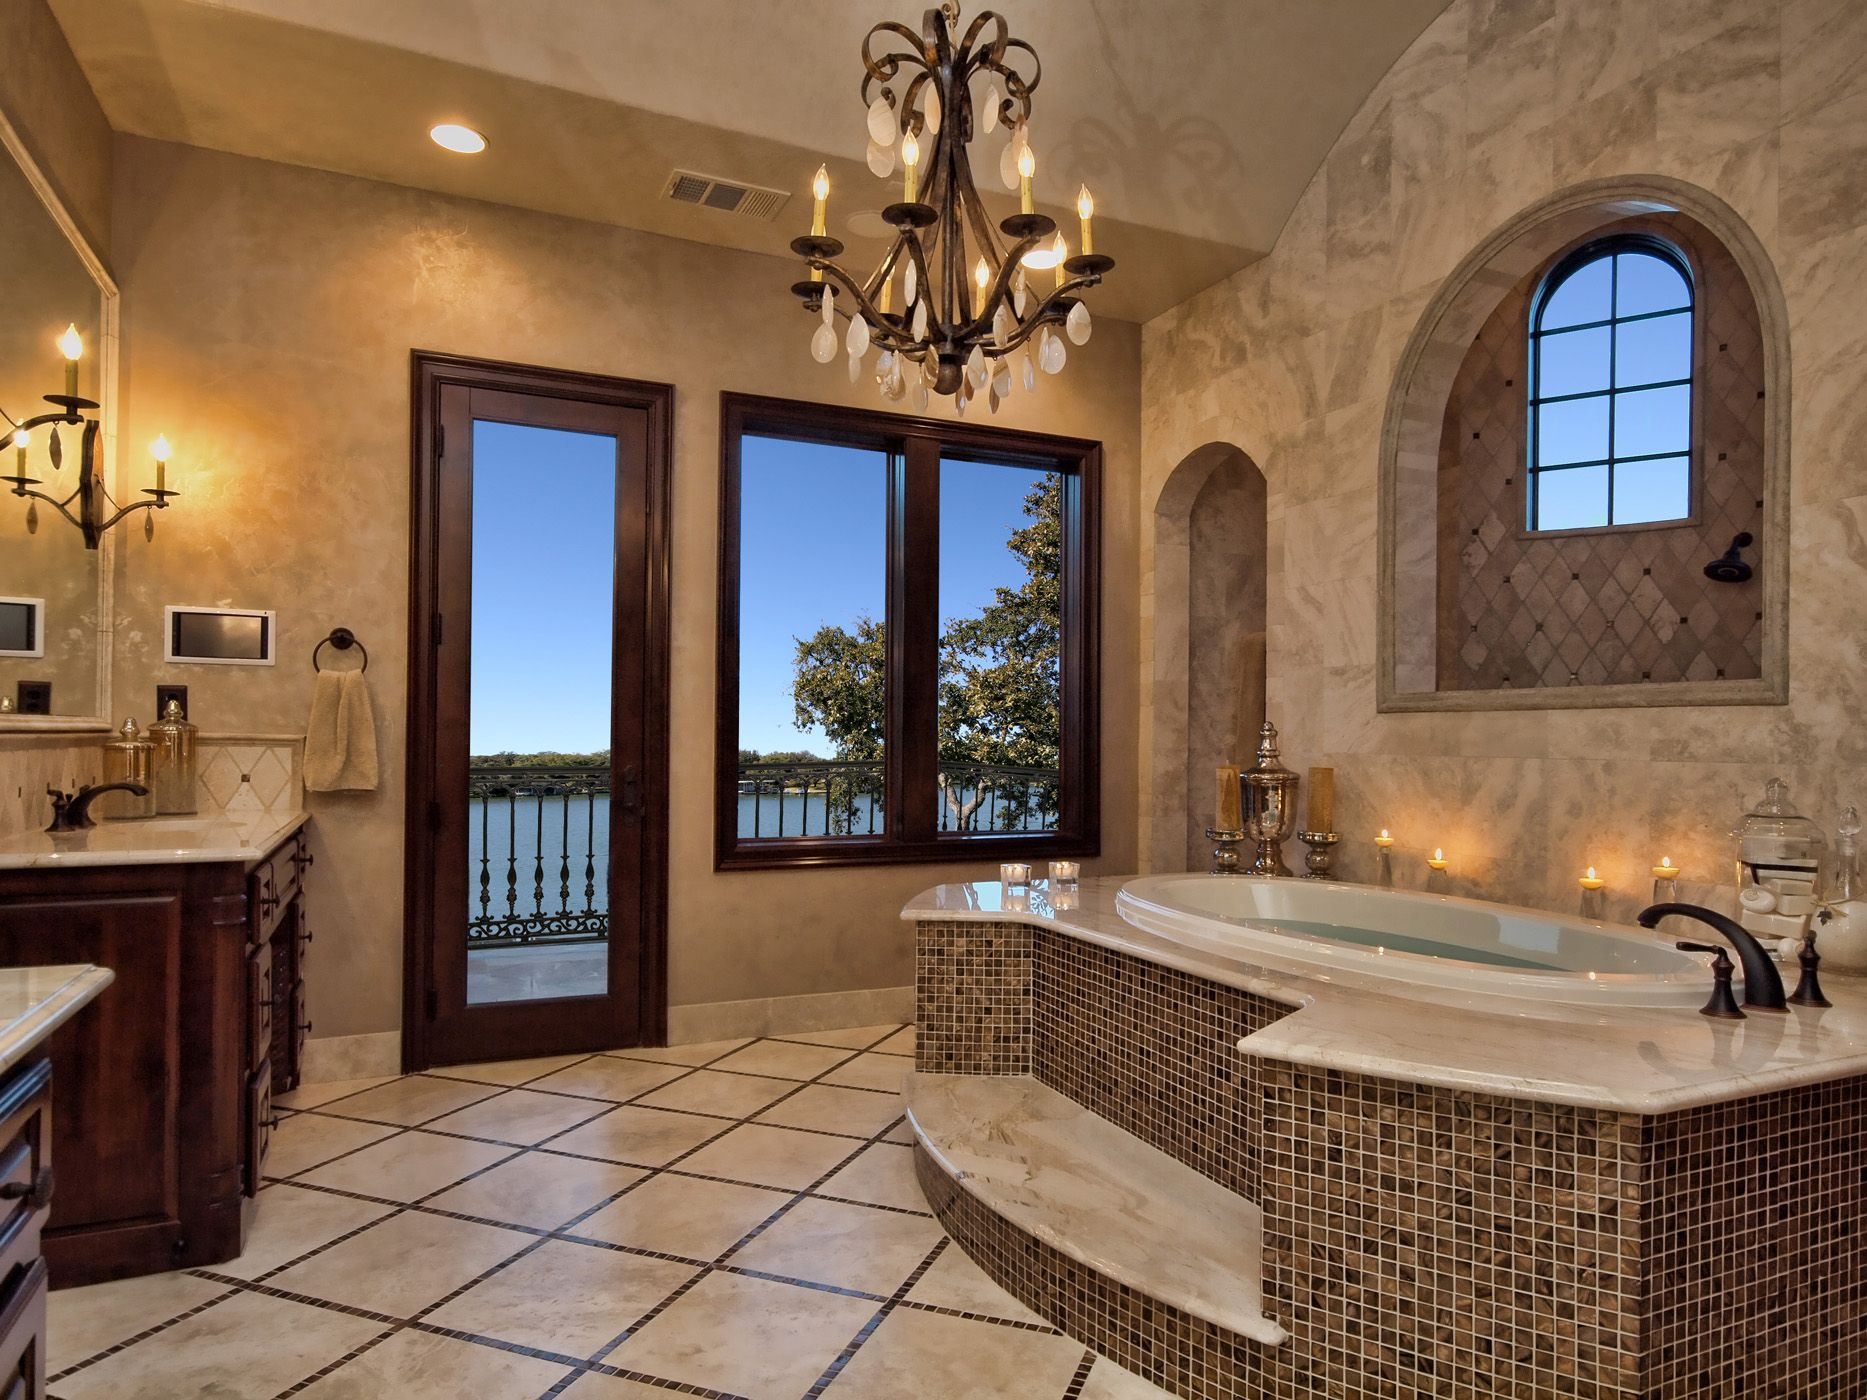 21 luxury mediterranean bathroom design ideas | luxury master